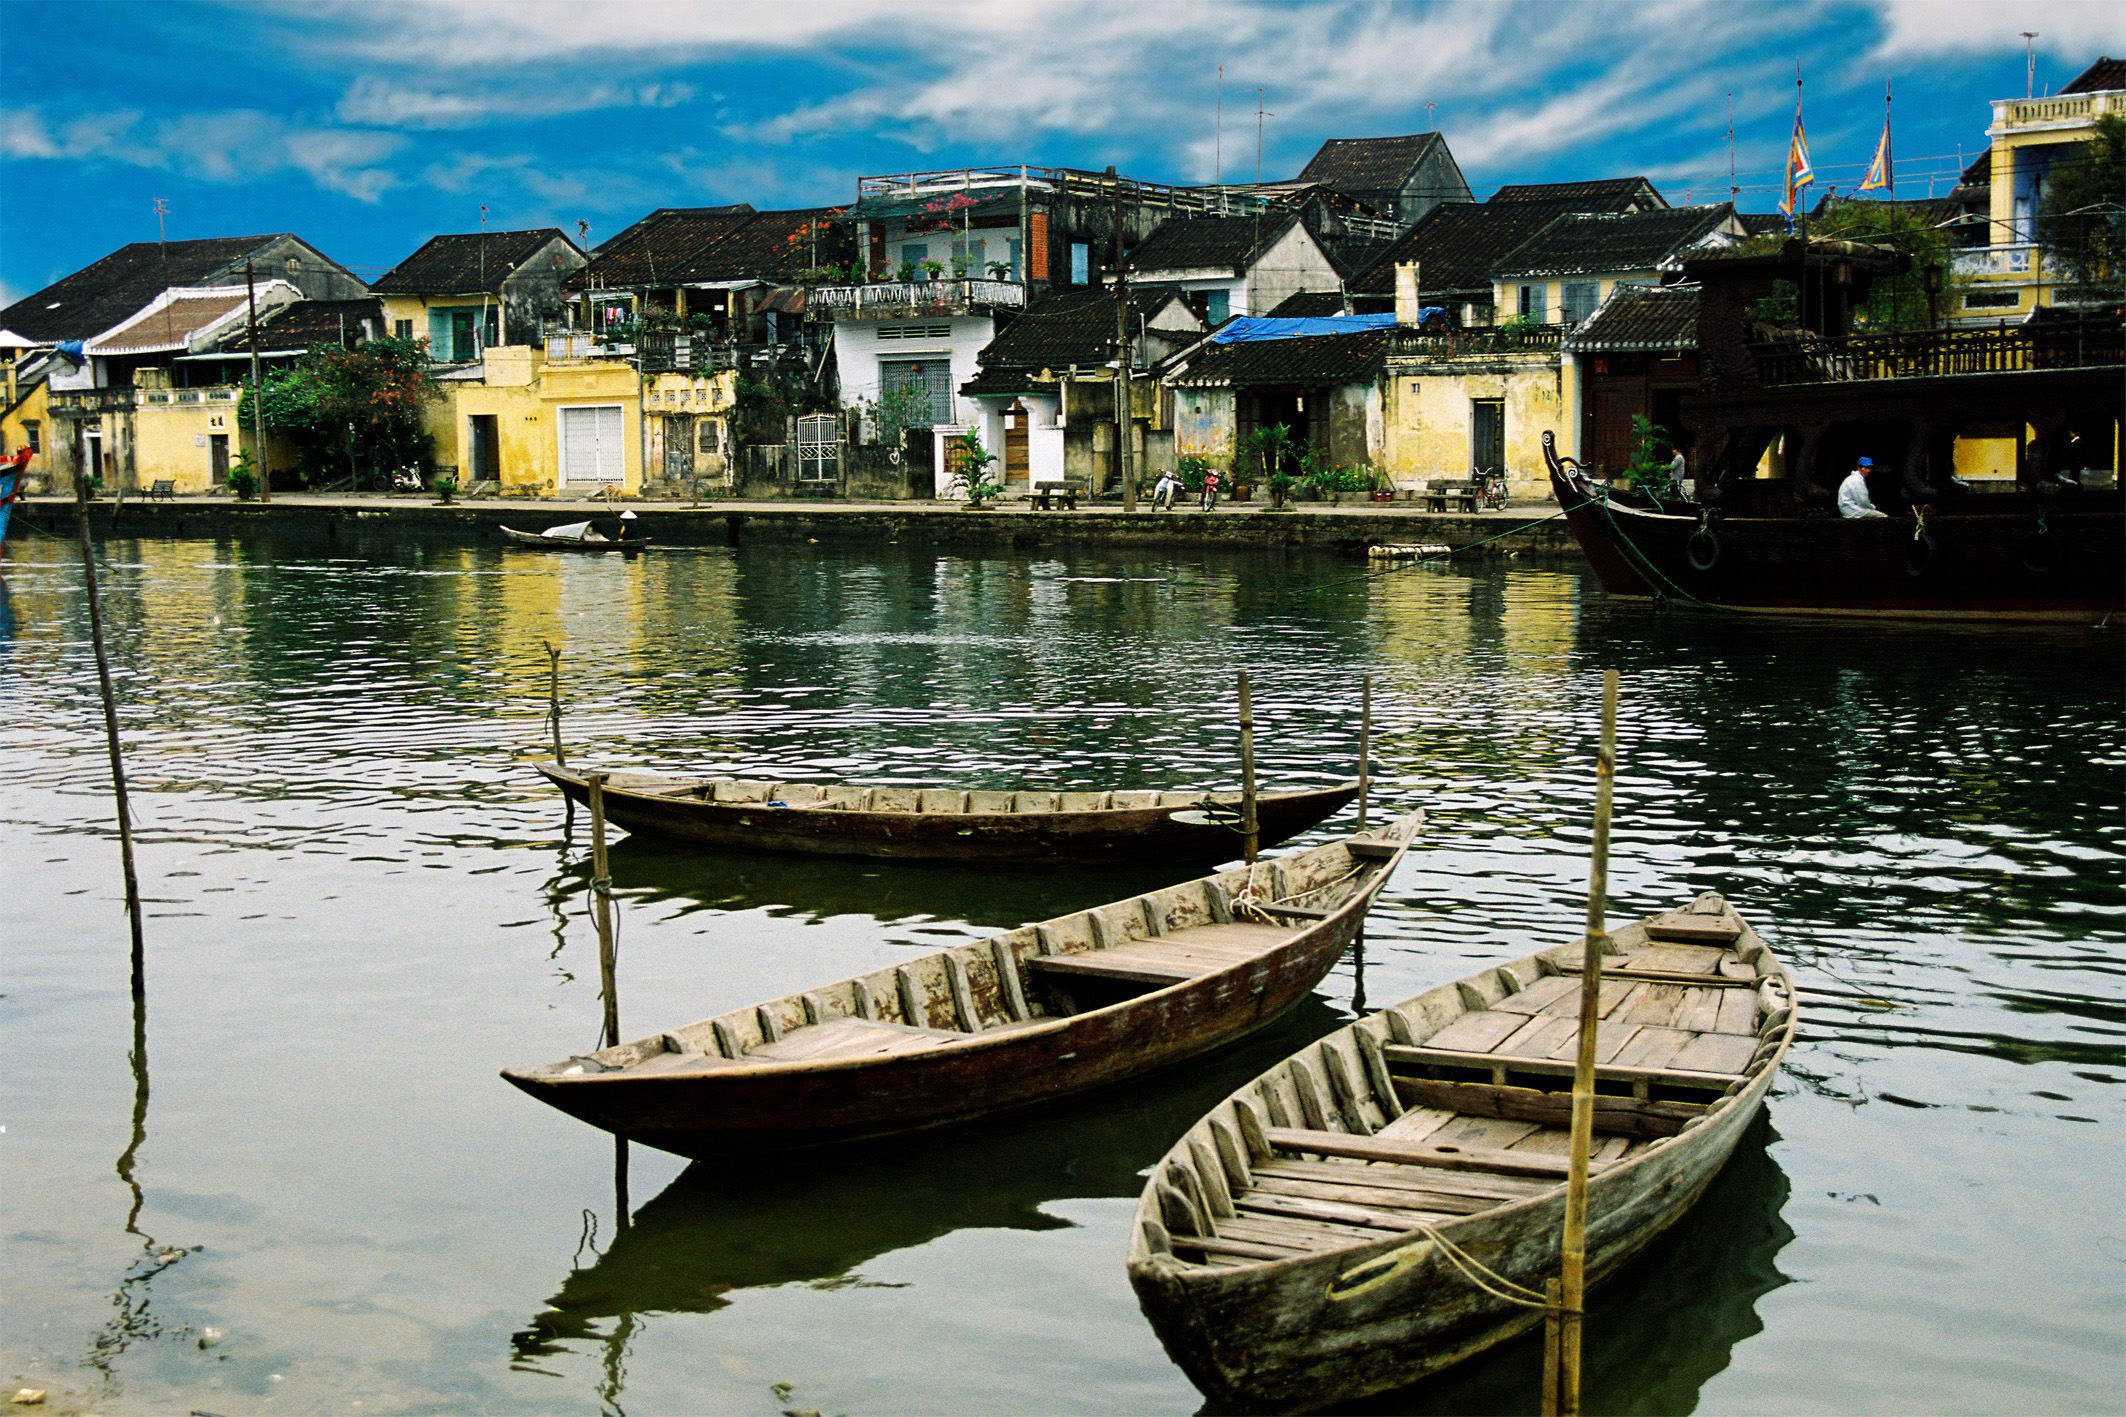 Old town, Boats, Bspo06, Buildings, Dalat, HQ Photo